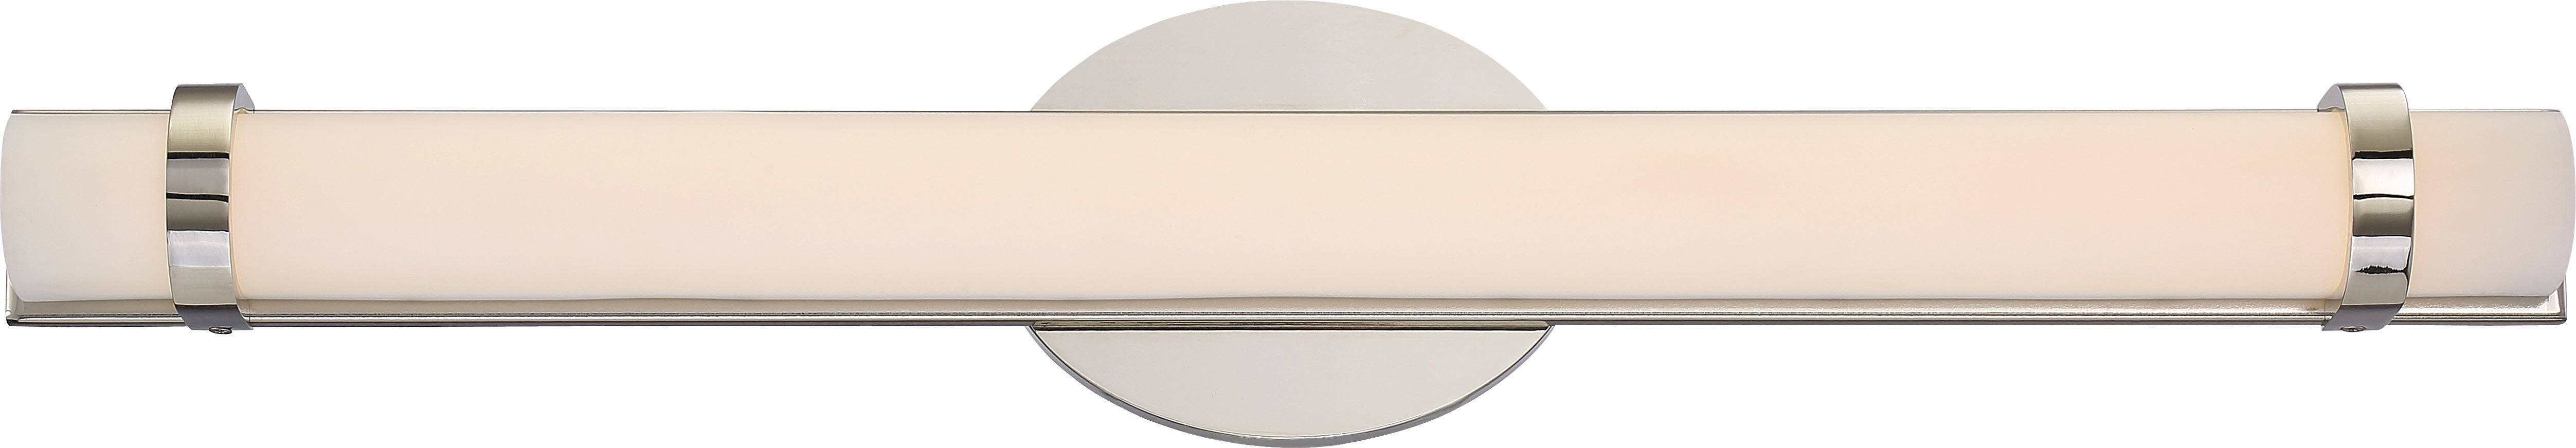 """Nuvo Slice 1-Light 24"""" LED Double Wall Vanity Sconce in Polished Nickel Finish"""